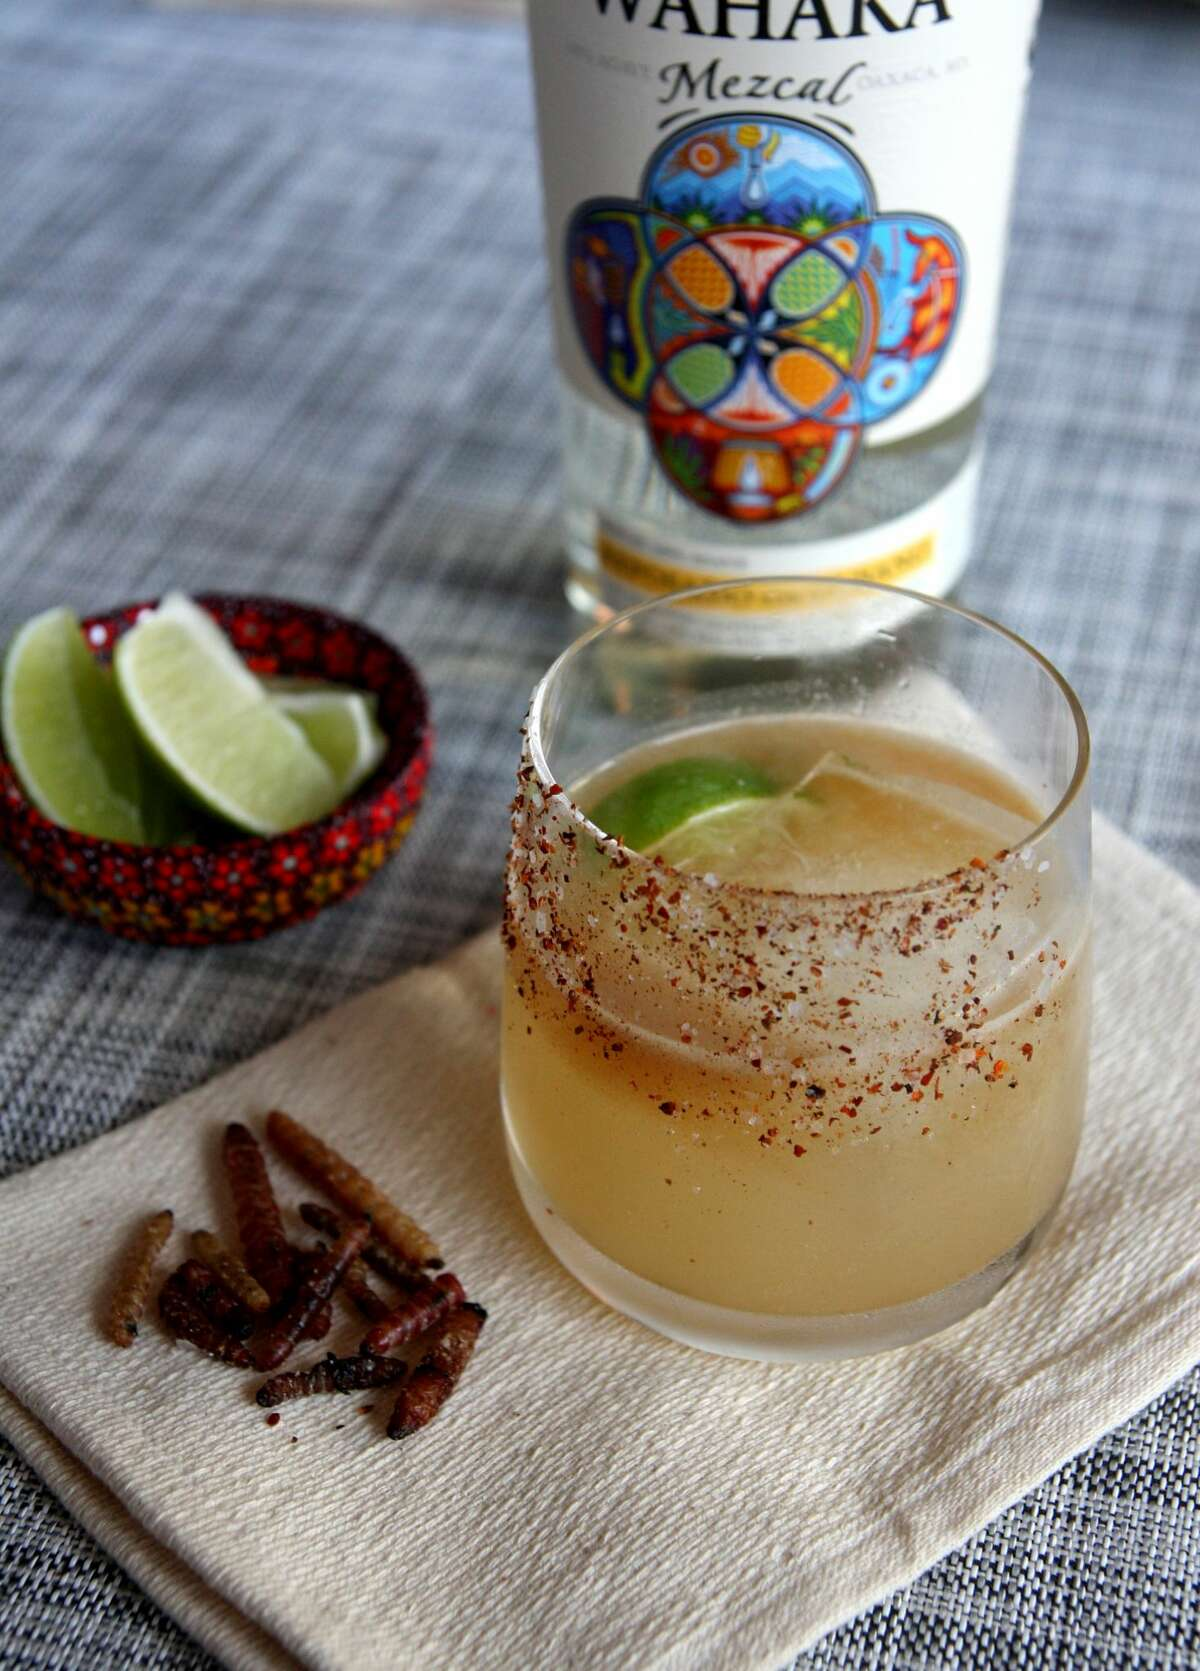 Hugo's 1600 Westheimer, 713-524-7744 - Mezcal margarita ($28): 250 ml bottle of Silencio mezcal, lime juice and house-made orange-agave nectar cordial.- Hugorita (house margarita; $28): 375 ml bottle of Blanco Tequila, lime juice and house-made orange-agave nectar cordial. - Sangira ($22): a bottle of red wine, aged Mexican brandy and a lime, orange, mango and pineapple juice mix .- Spiced Don Julio margarita kit ($60): a bottle of Don Julio Blanco, orange liqueur, lime and sliced jalapenos.